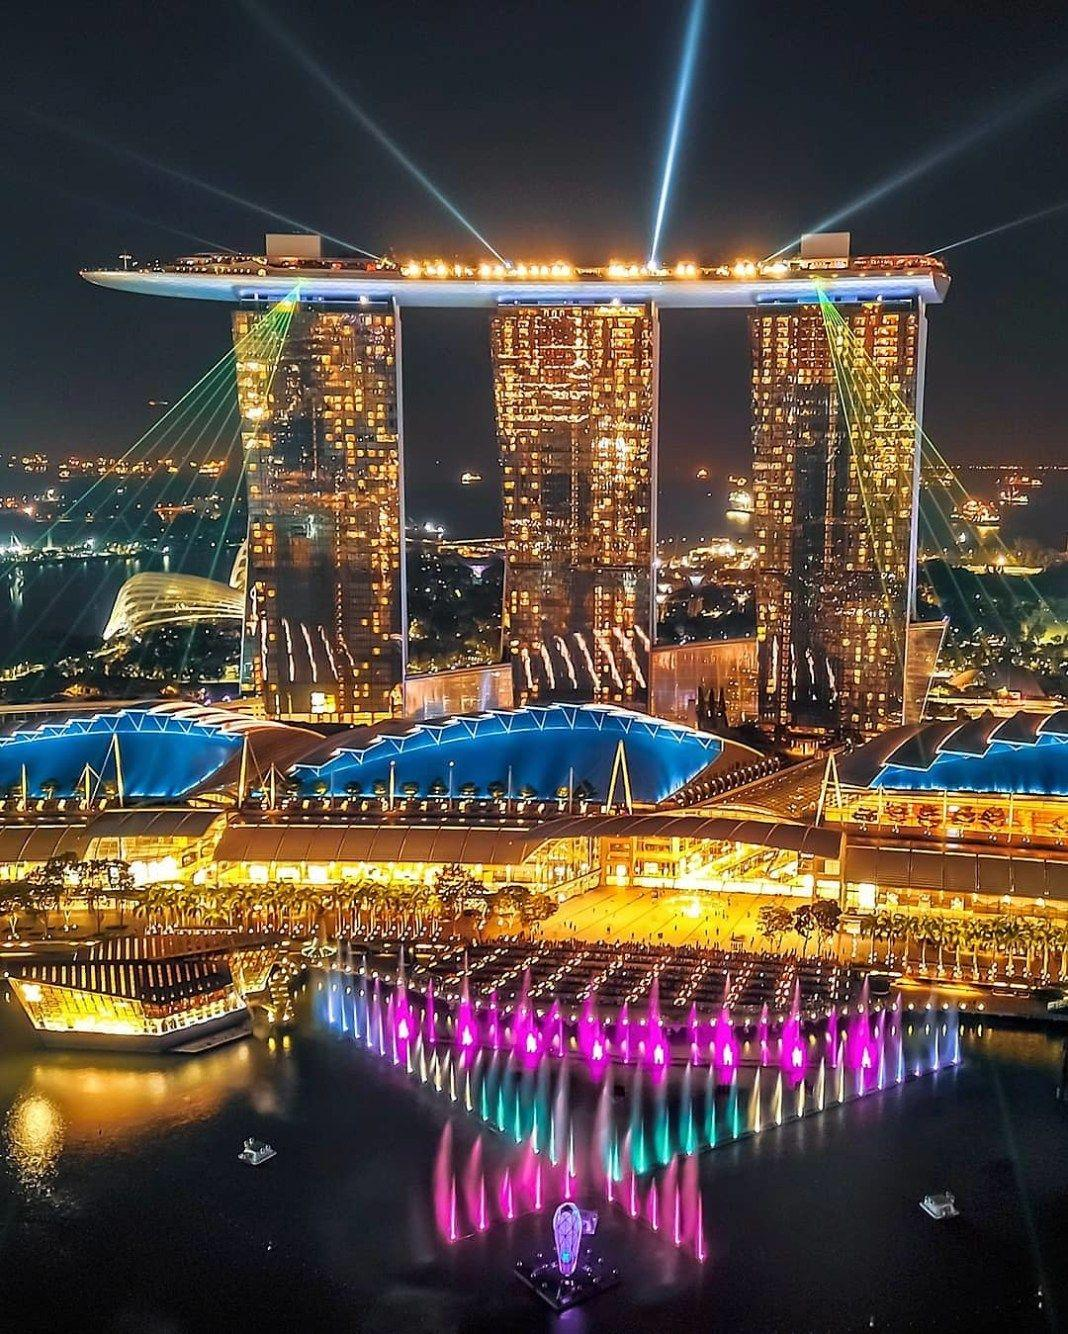 D:\DOWNLOADS\10 FREE THINGS TO DO IN SINGAPORE.jpg